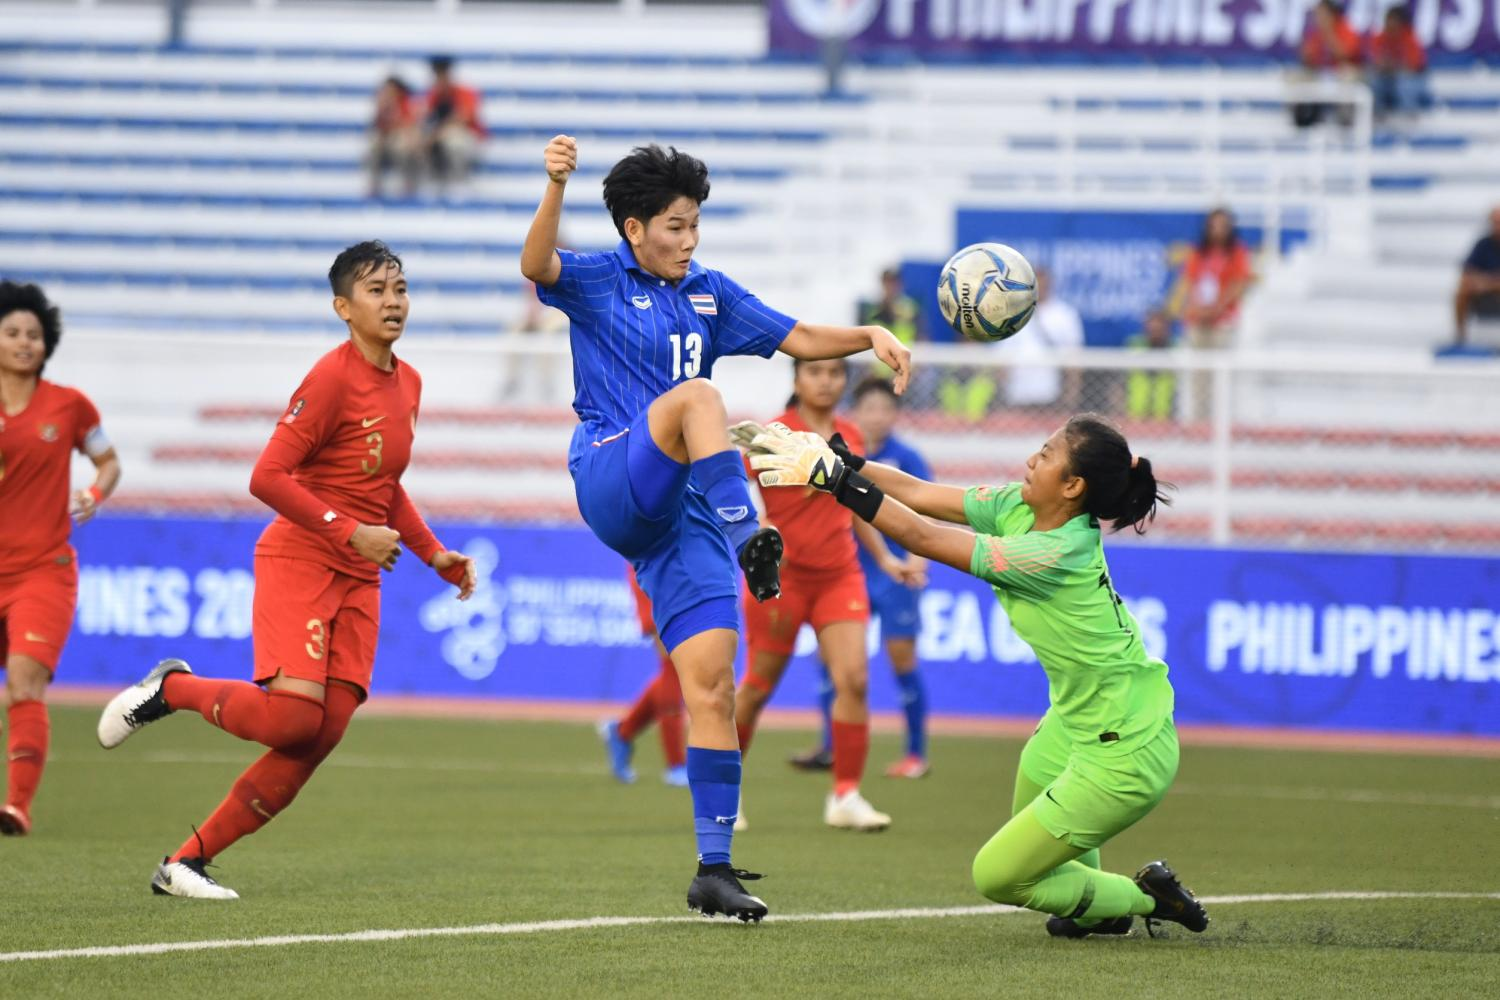 Thailand's Kanyanat Chetthabutr, No.13, scores against Indonesia.